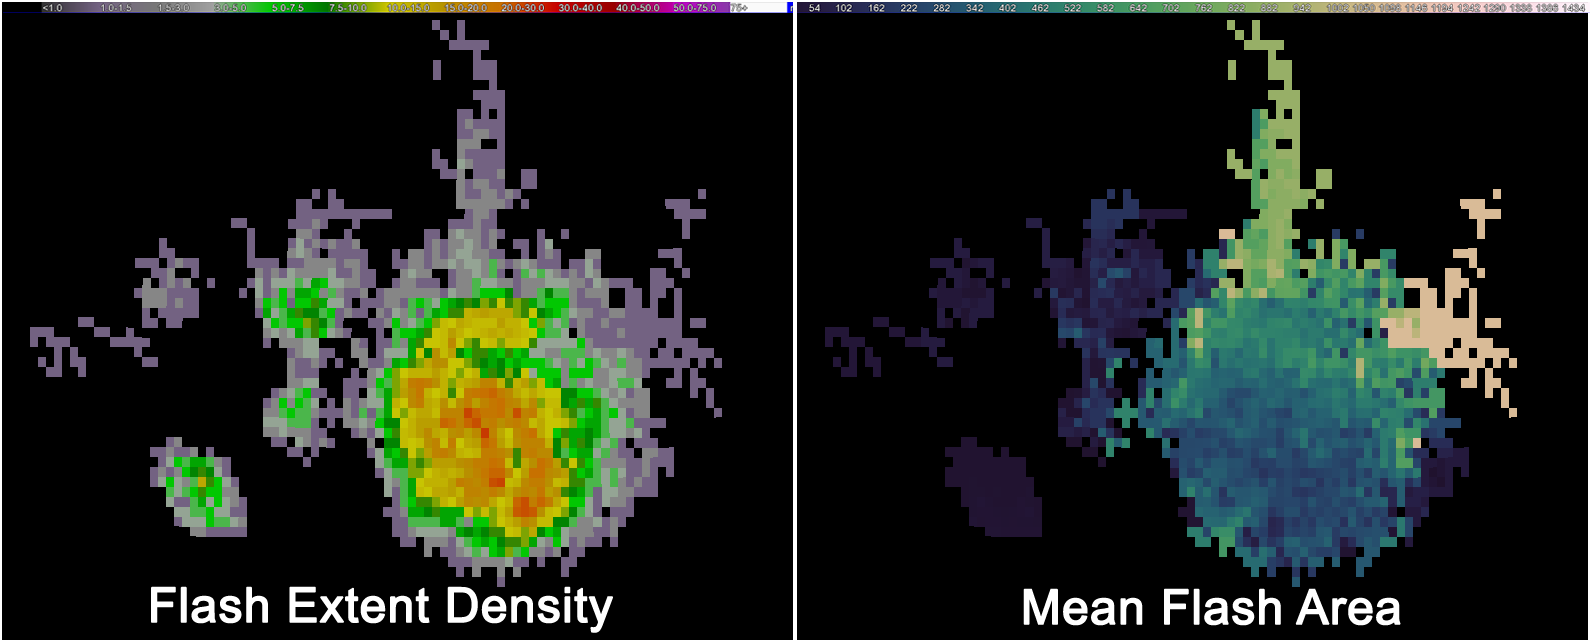 """A comparison of the 2000 UTC 1 min. flash extent density (left) and mean flash area (right) for a supercell over Kingfisher County, Oklahoma on 16 May 2010. This storm produced a wide swath of giant hail (>2"""" in diameter), causing severe damage to buildings and vehicles in it path."""